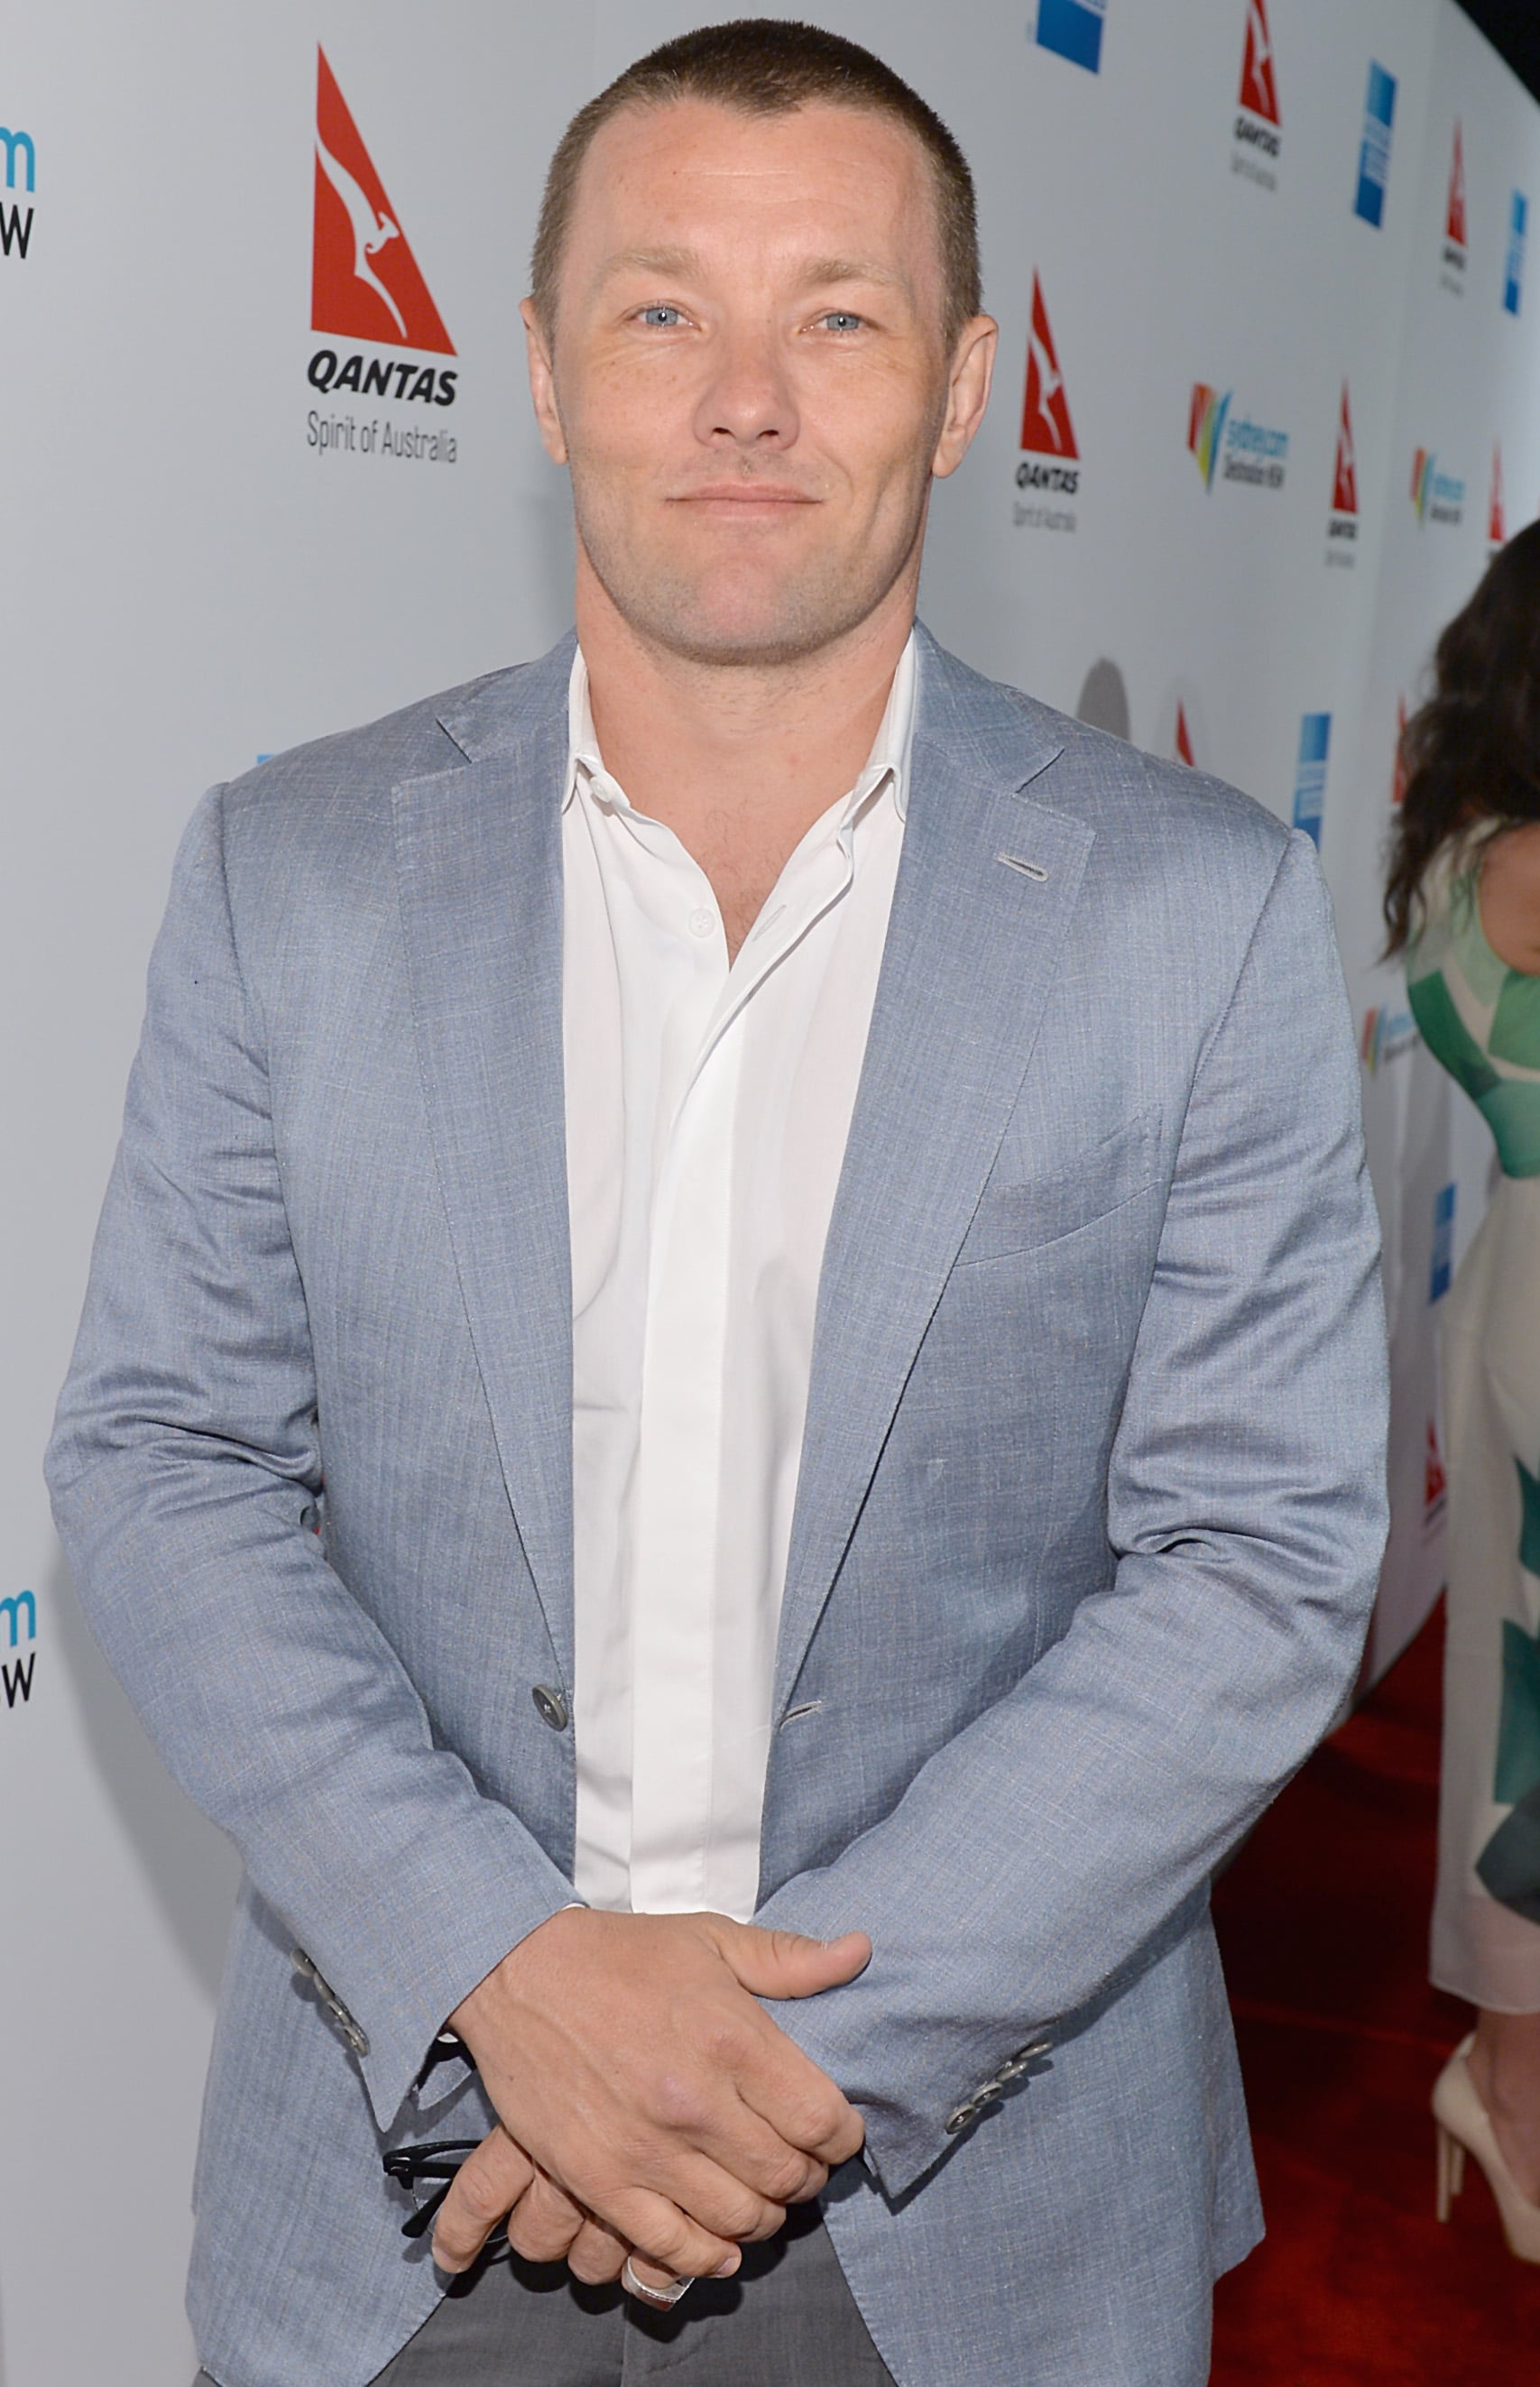 Joel Edgerton will star in Life, the movie about James Dean and a Life magazine journalist played by Robert Pattinson. Edgerton will play Magnum Photography editor John Morris.